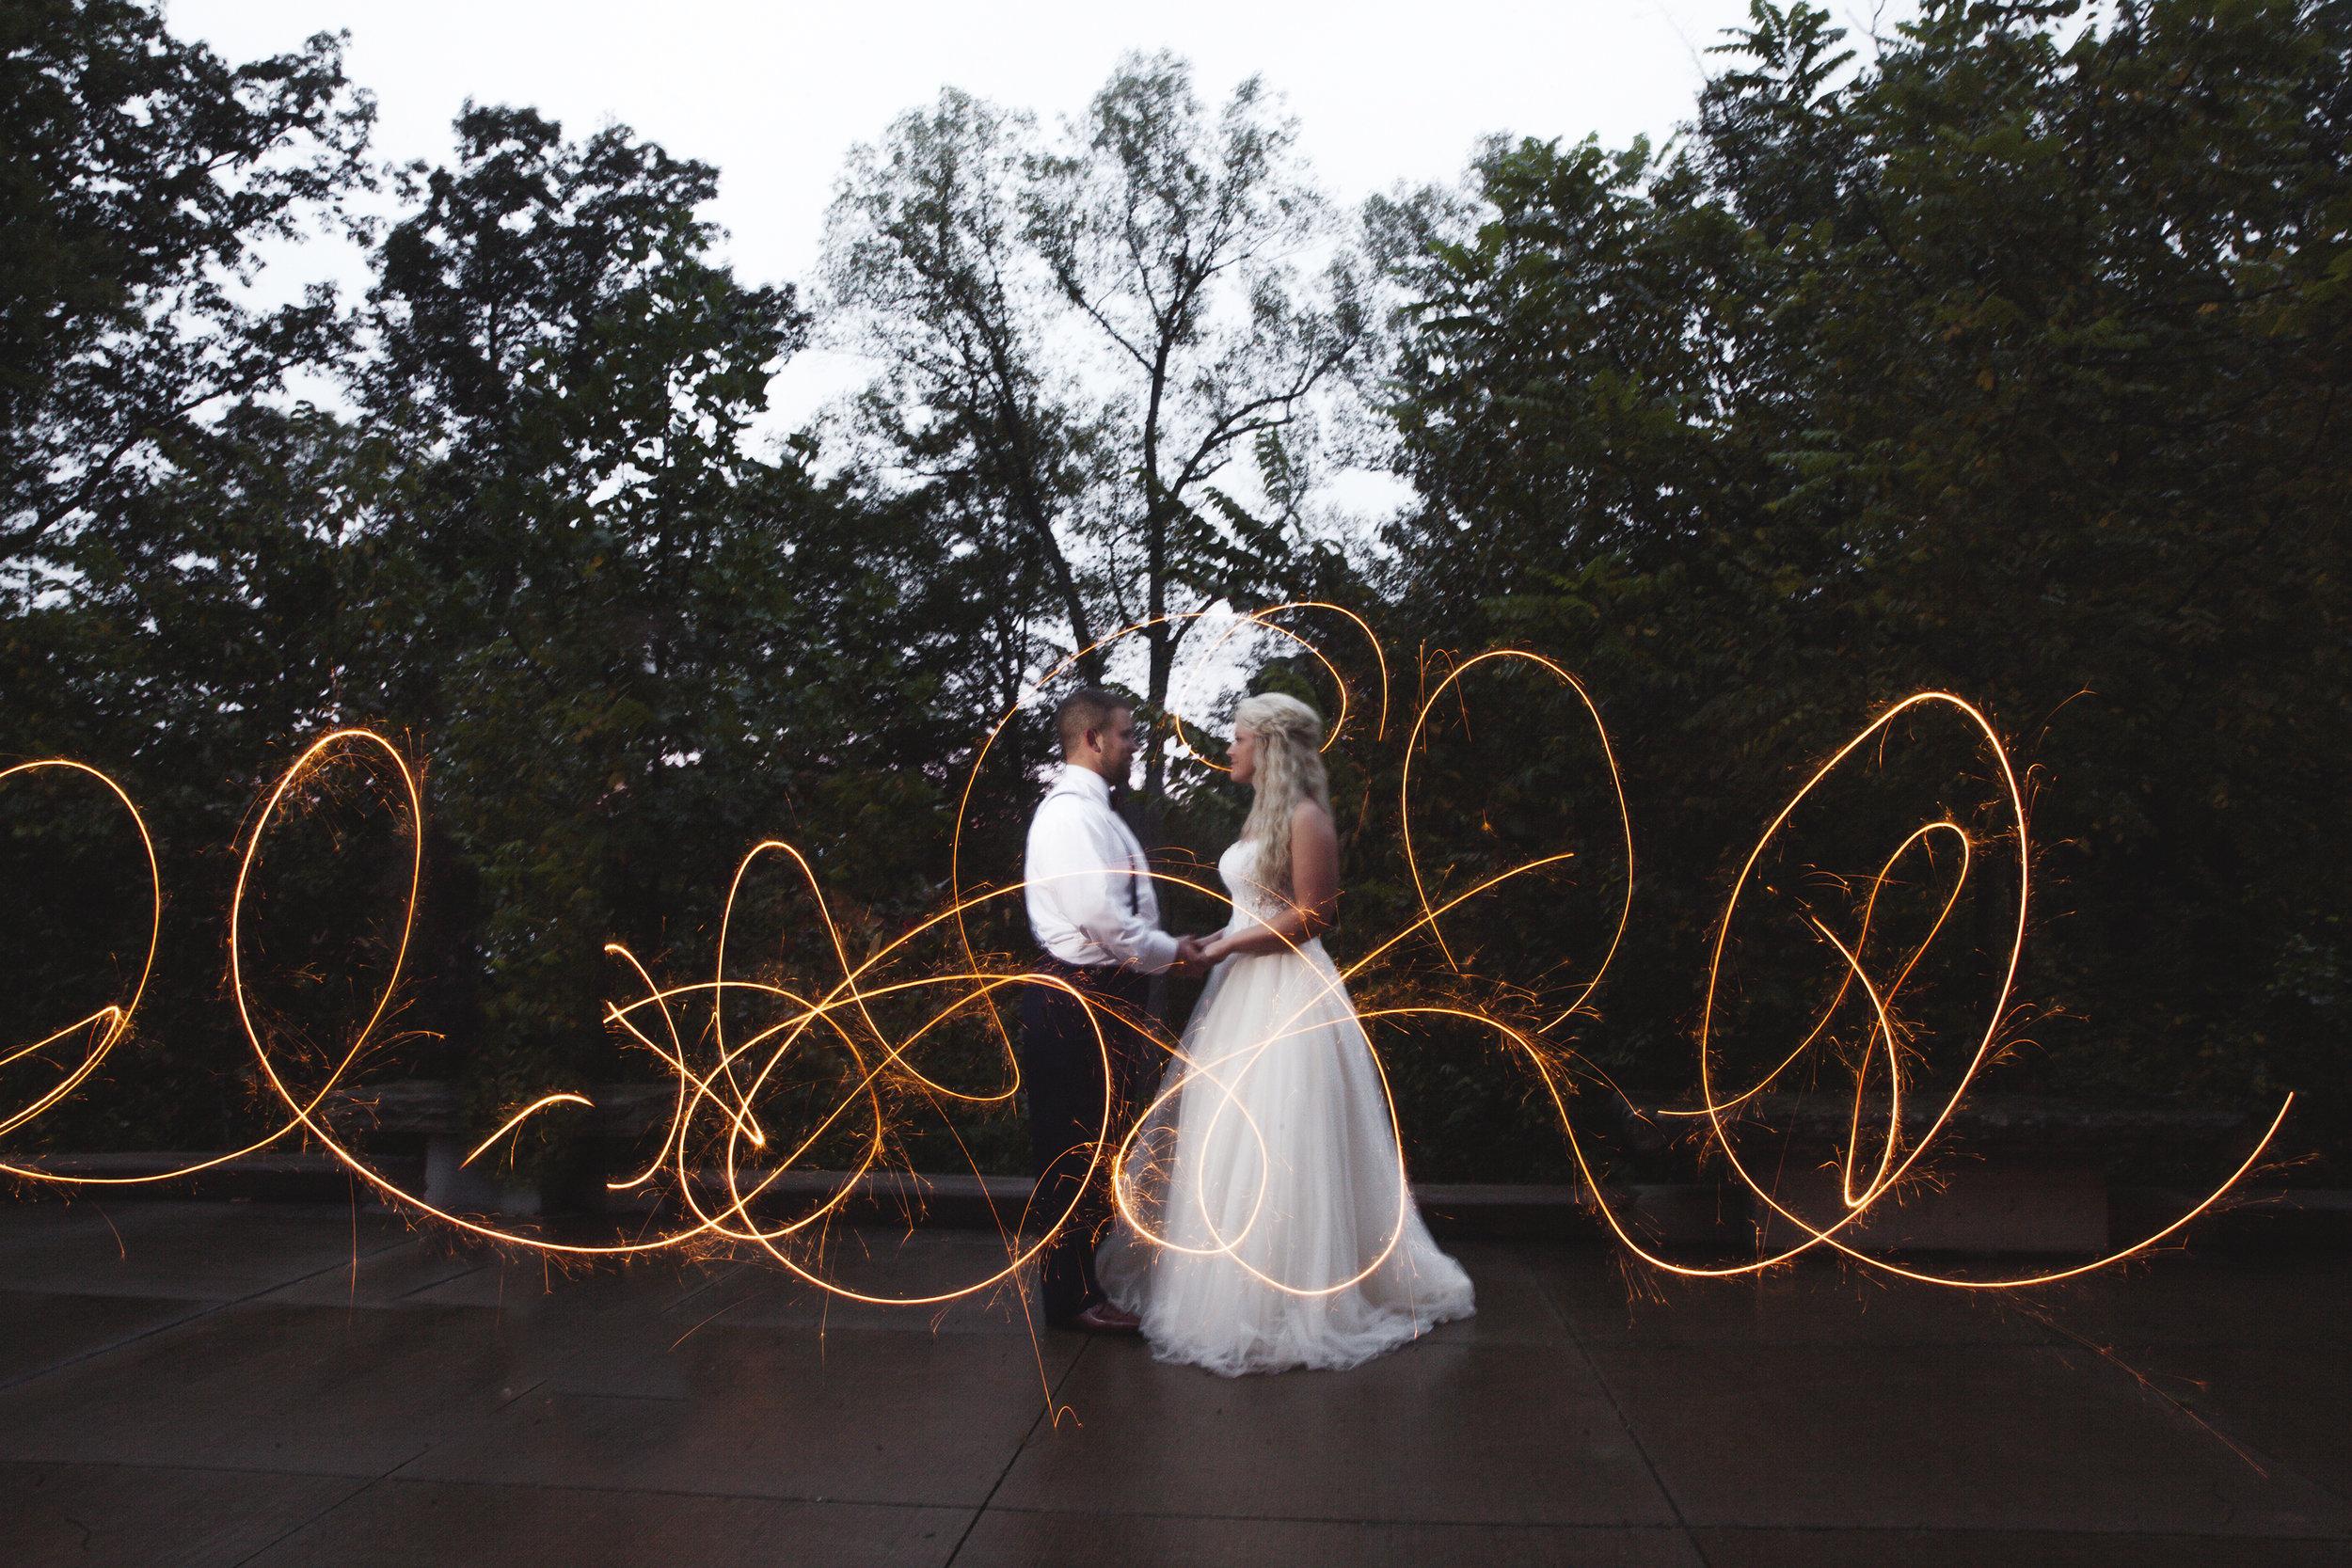 Writing with sparklers on wedding day